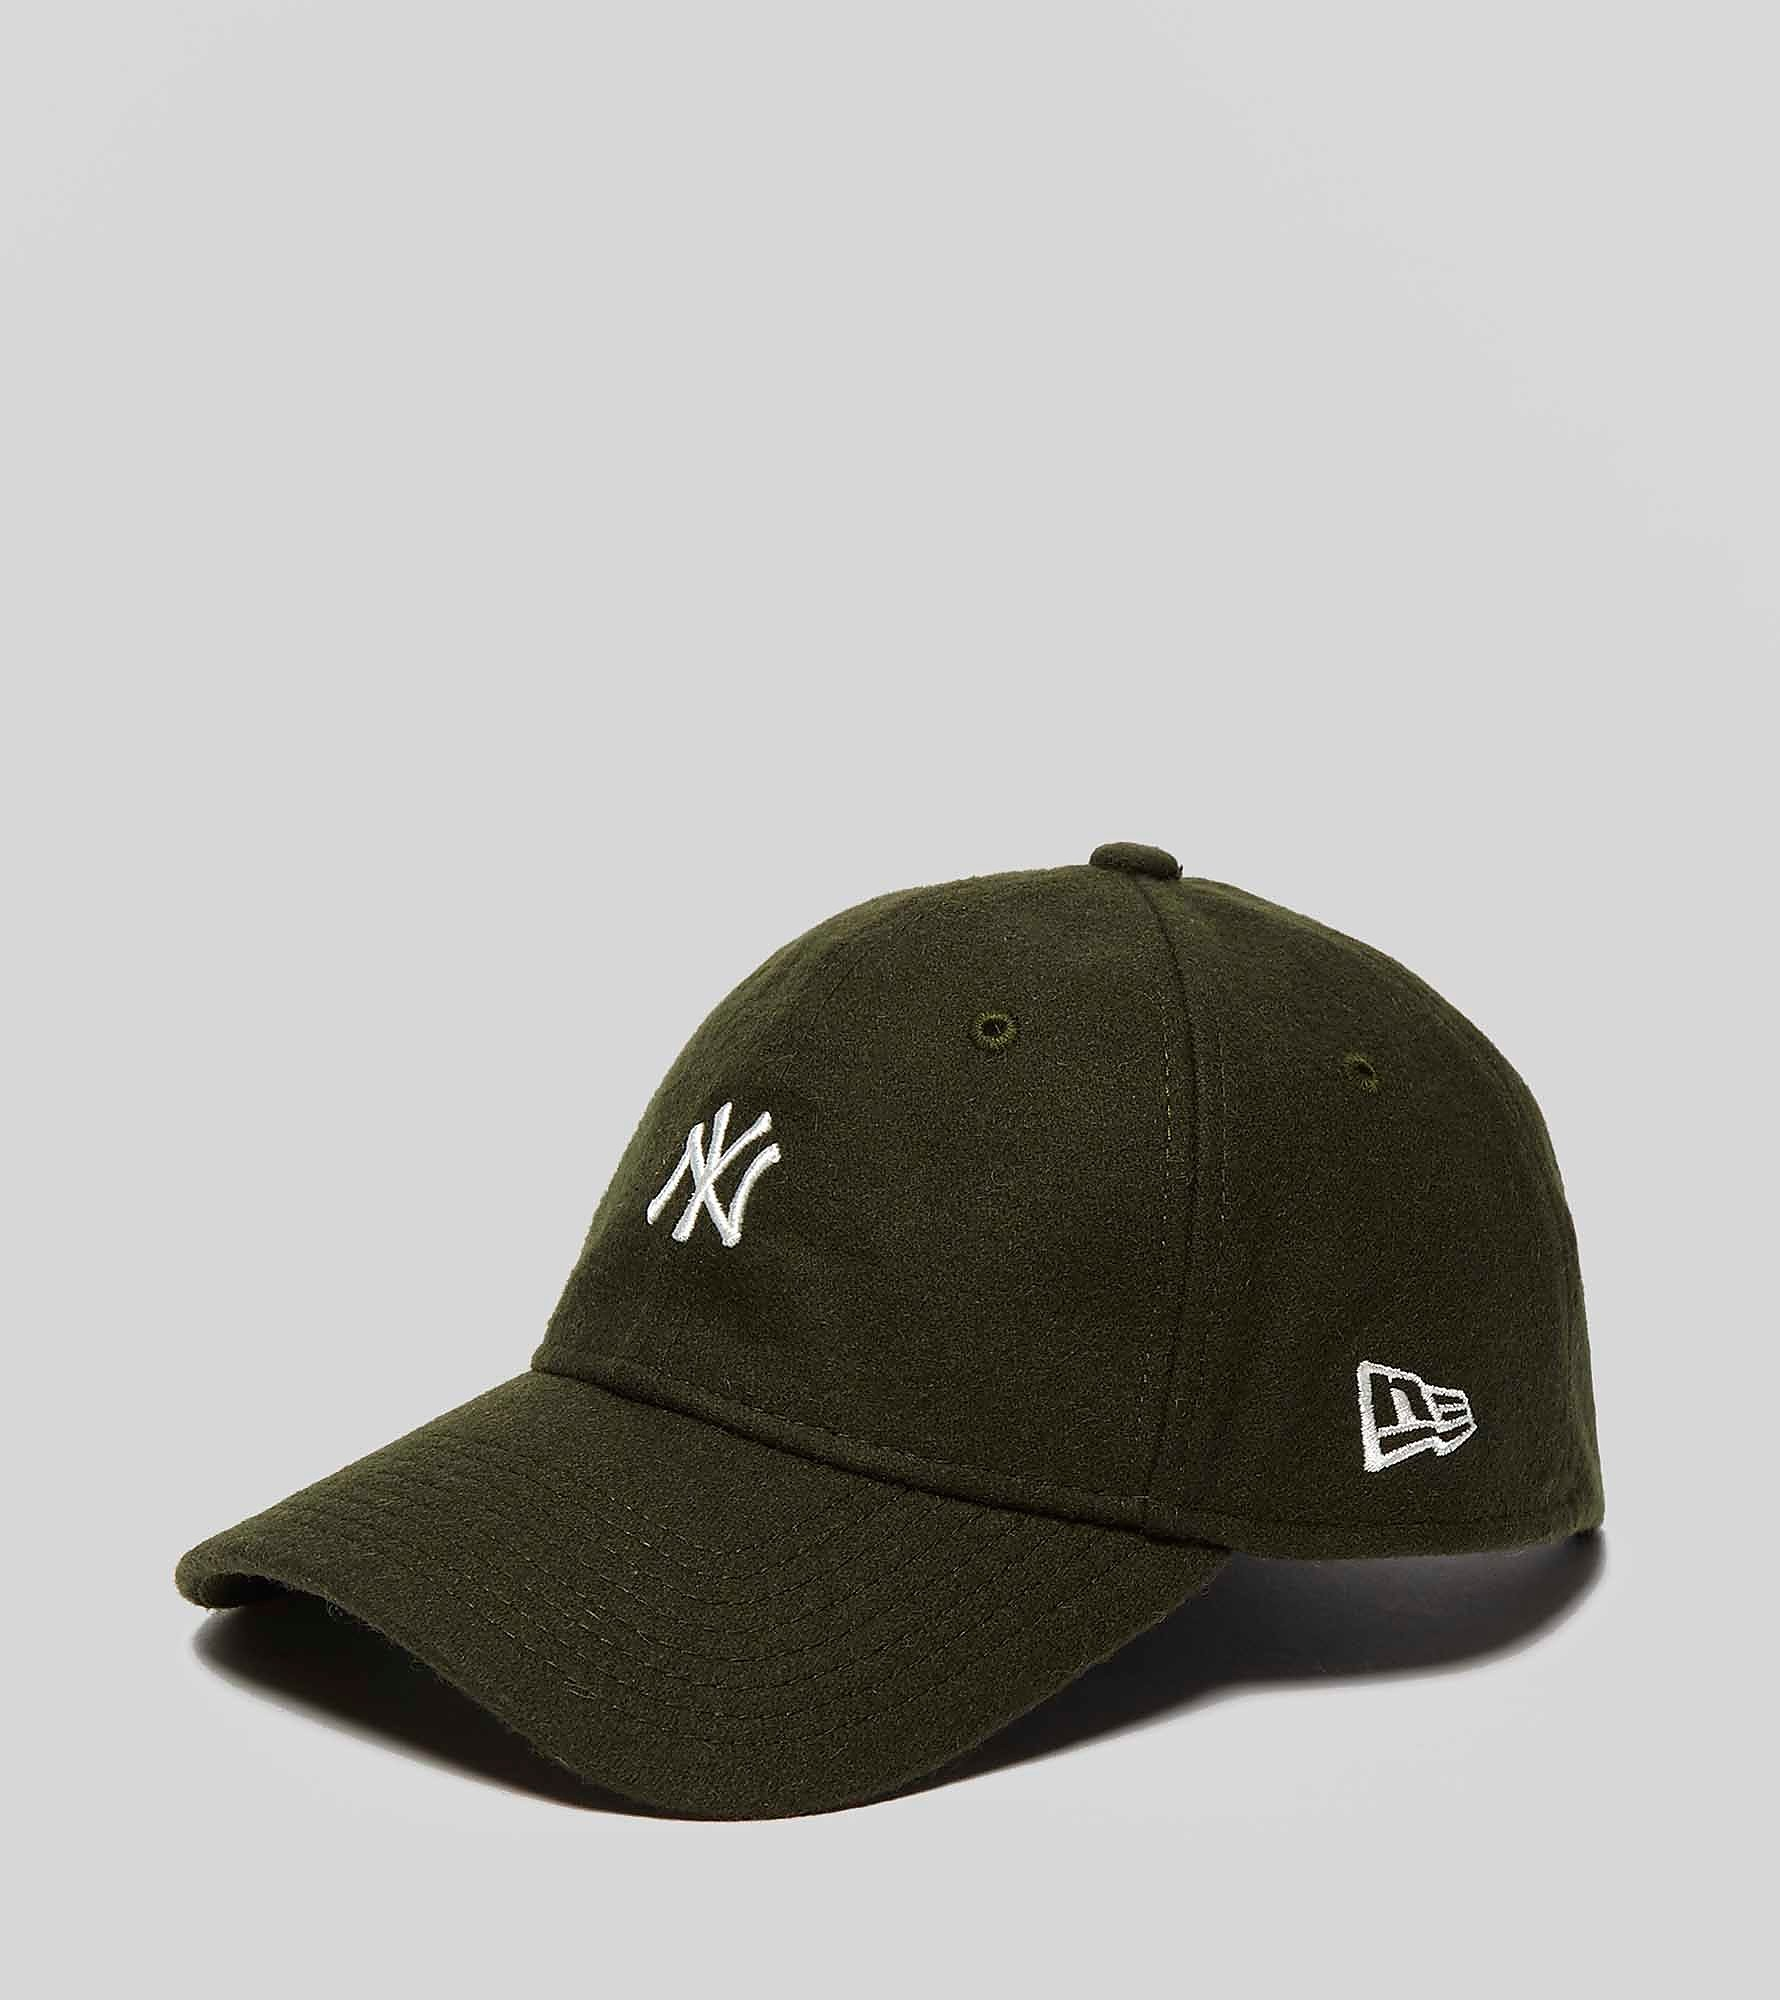 New Era 9TWENTY MLB Leather Strapback Wool Cap